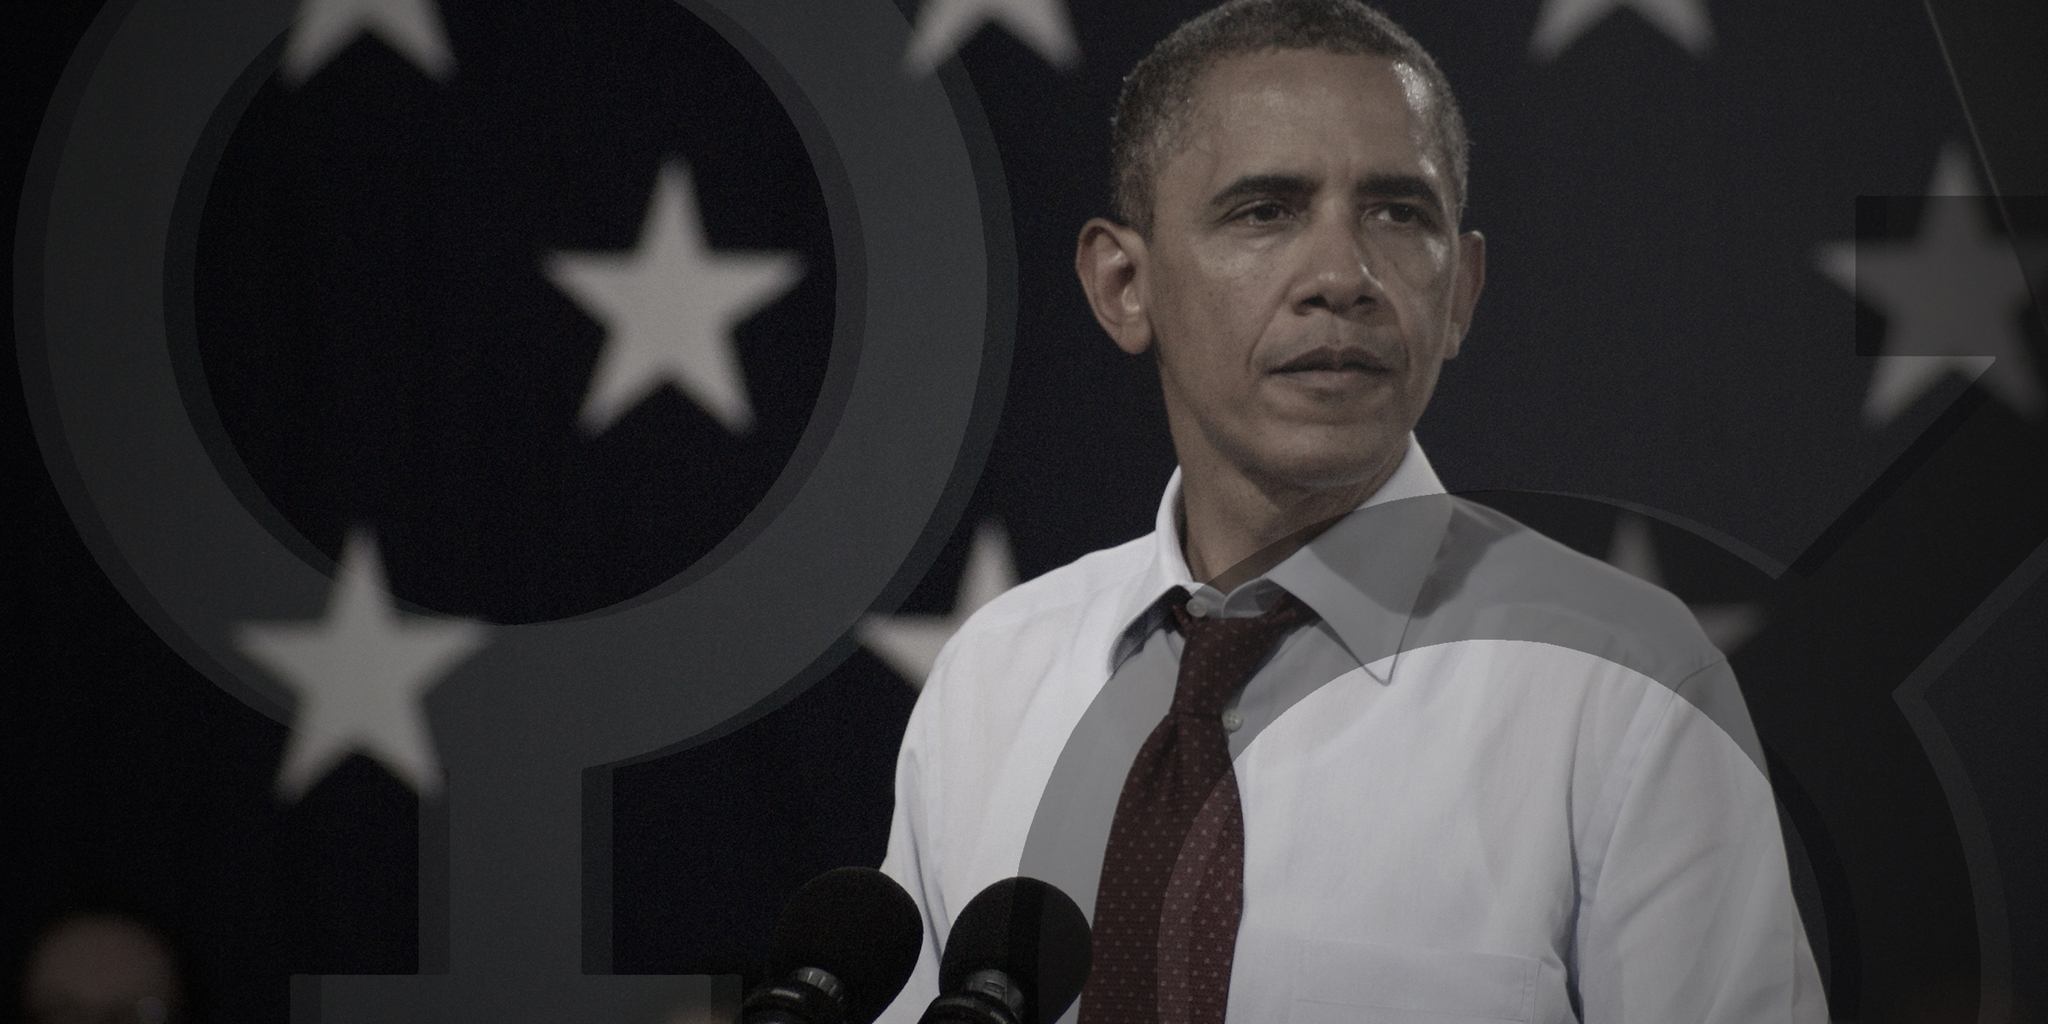 president obama says all men should be feminists in powerful essay obama surrounded by gender symbols